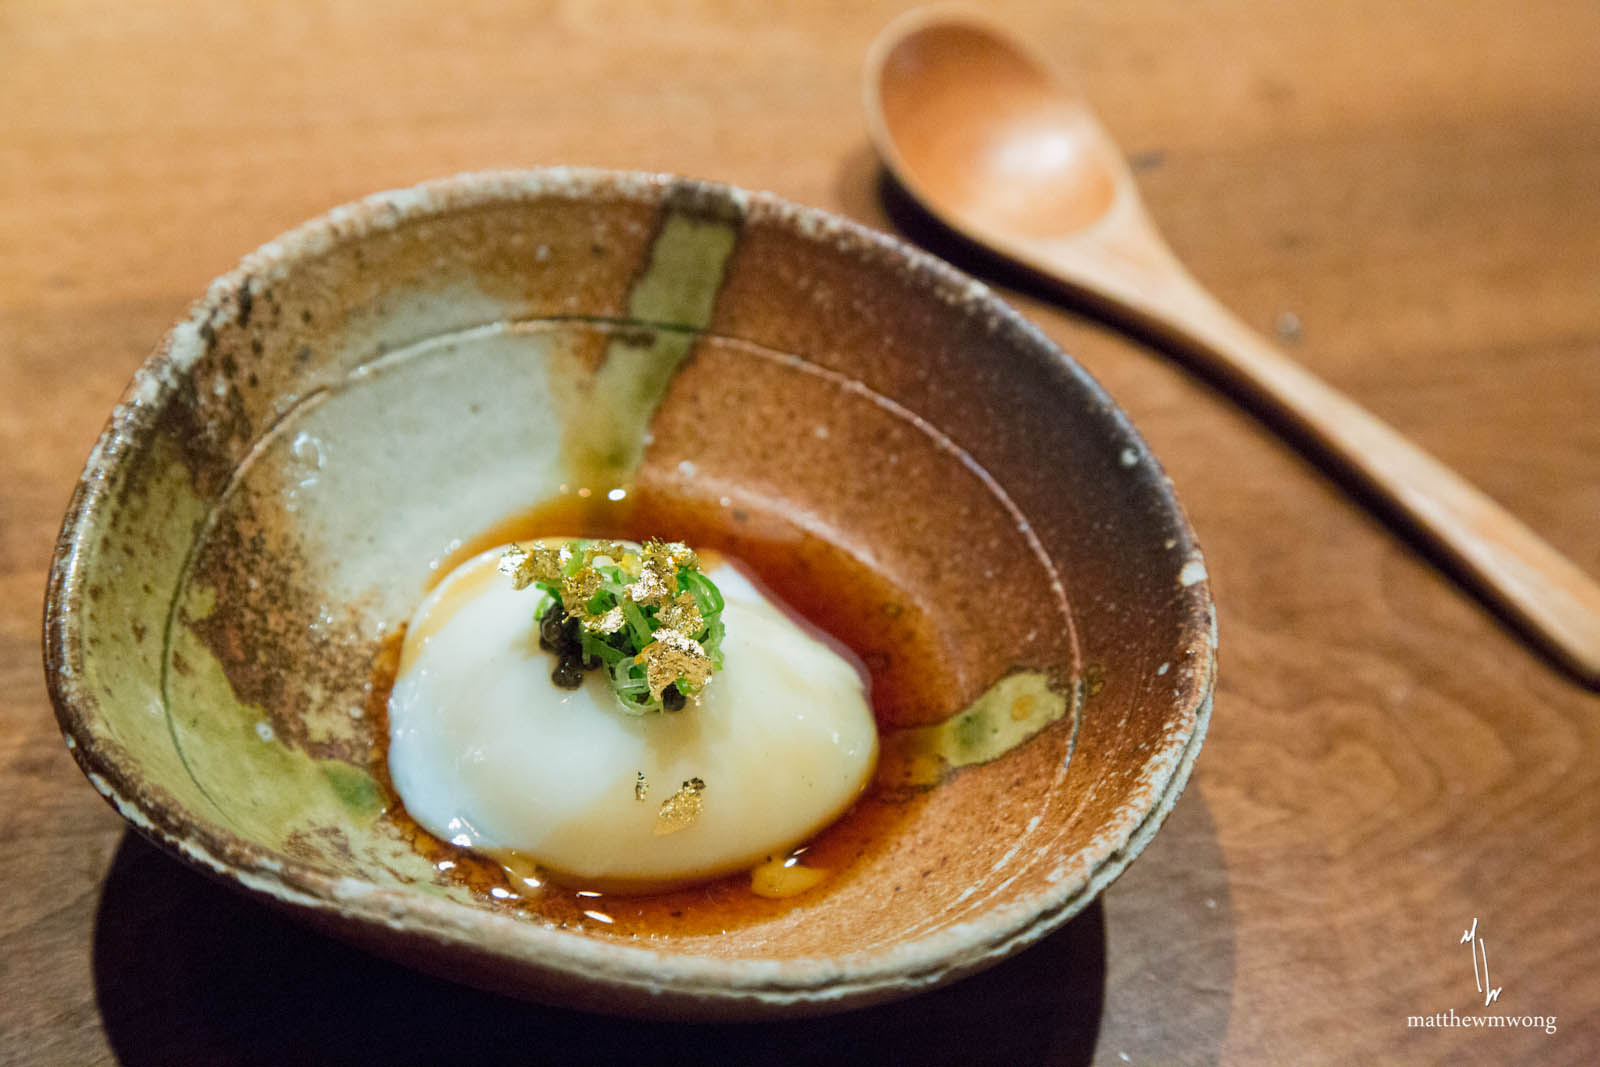 """Faberge"" Onsen Egg - white sturgeon caviar, gold leaf, dashi sauce, green onion"